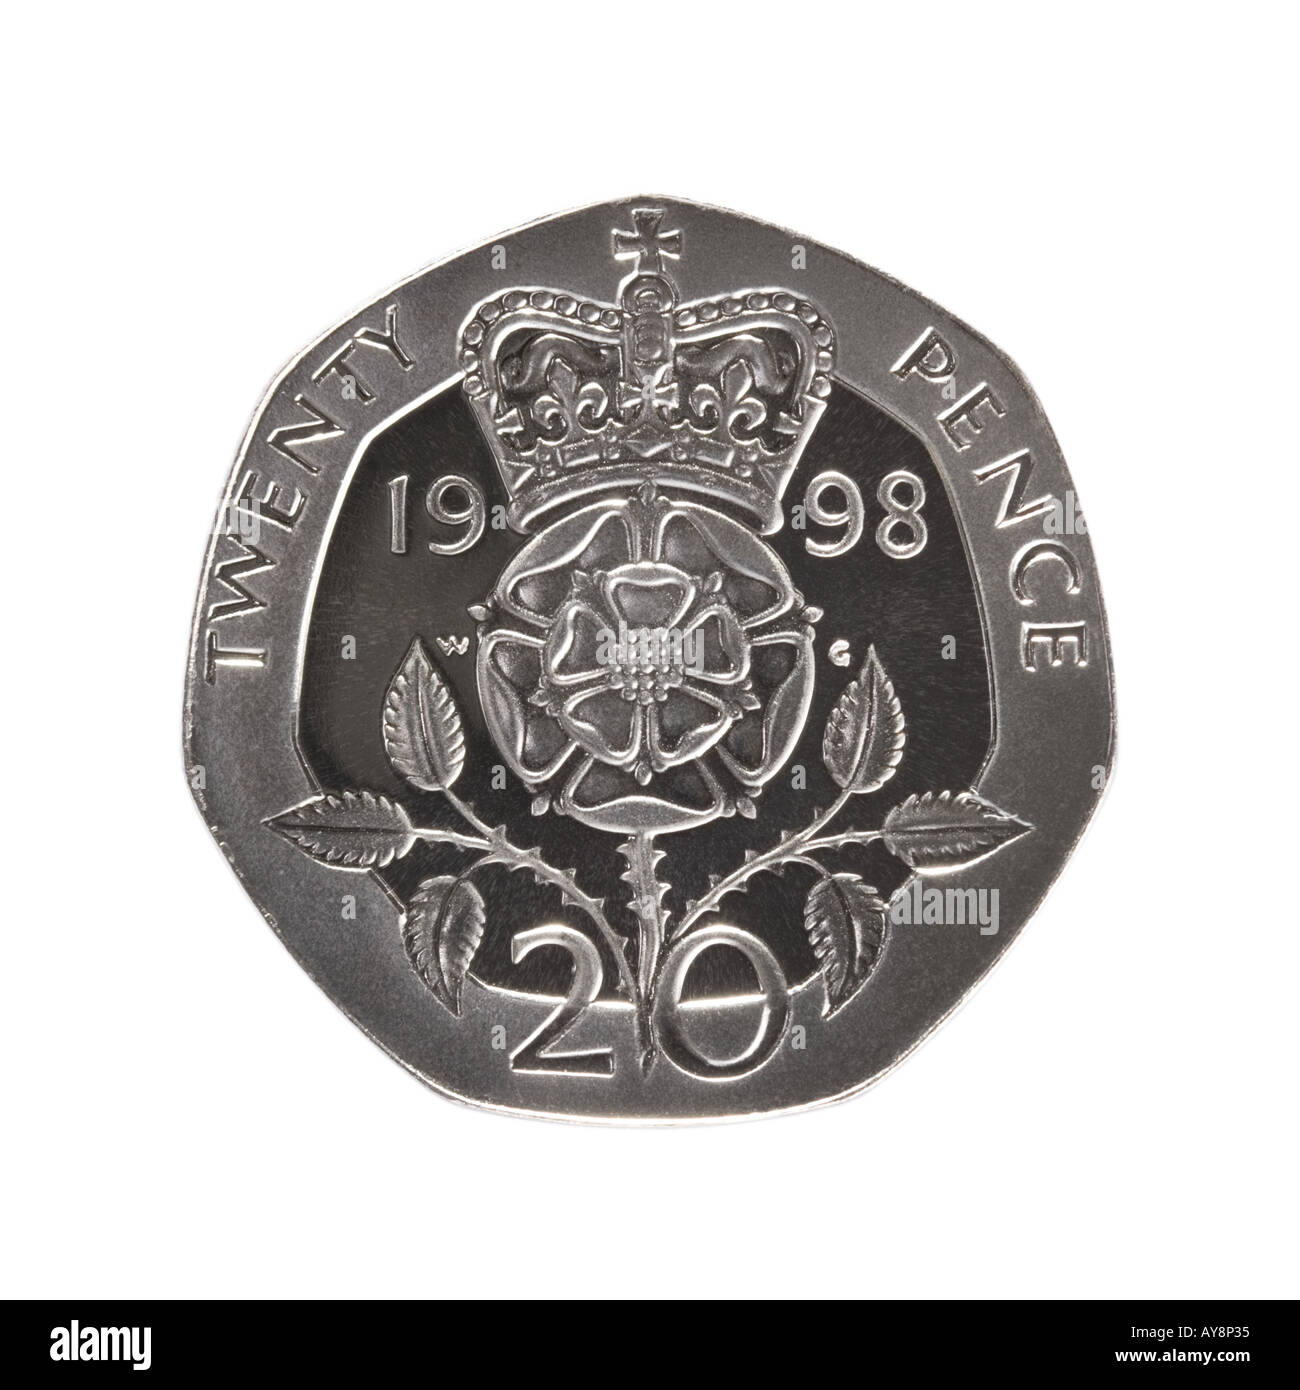 20 pence coin - Stock Image